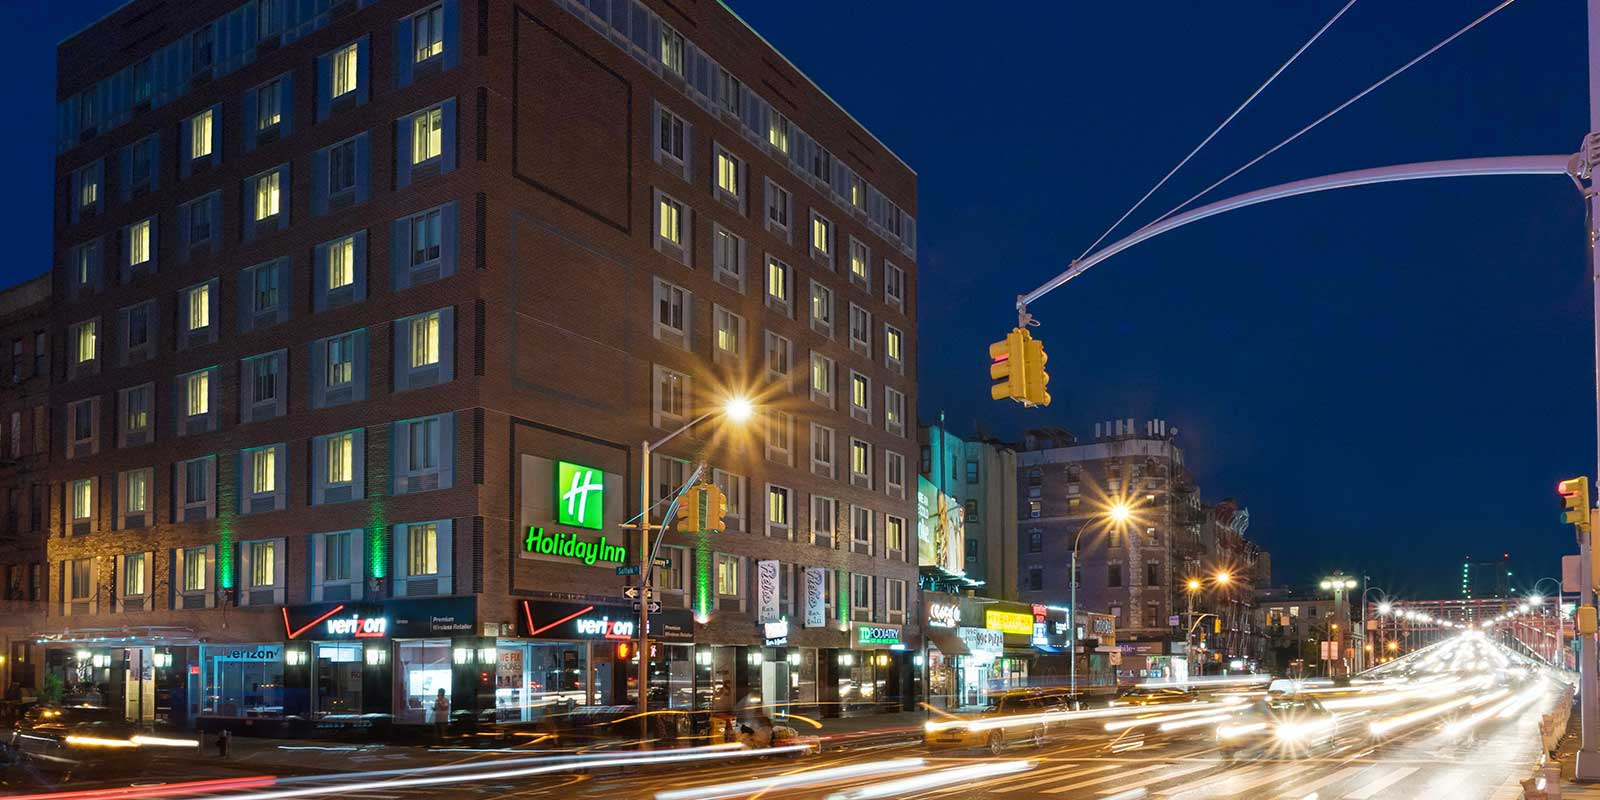 Holiday Inn Nyc Lower East Side M Amp R Hotel Management